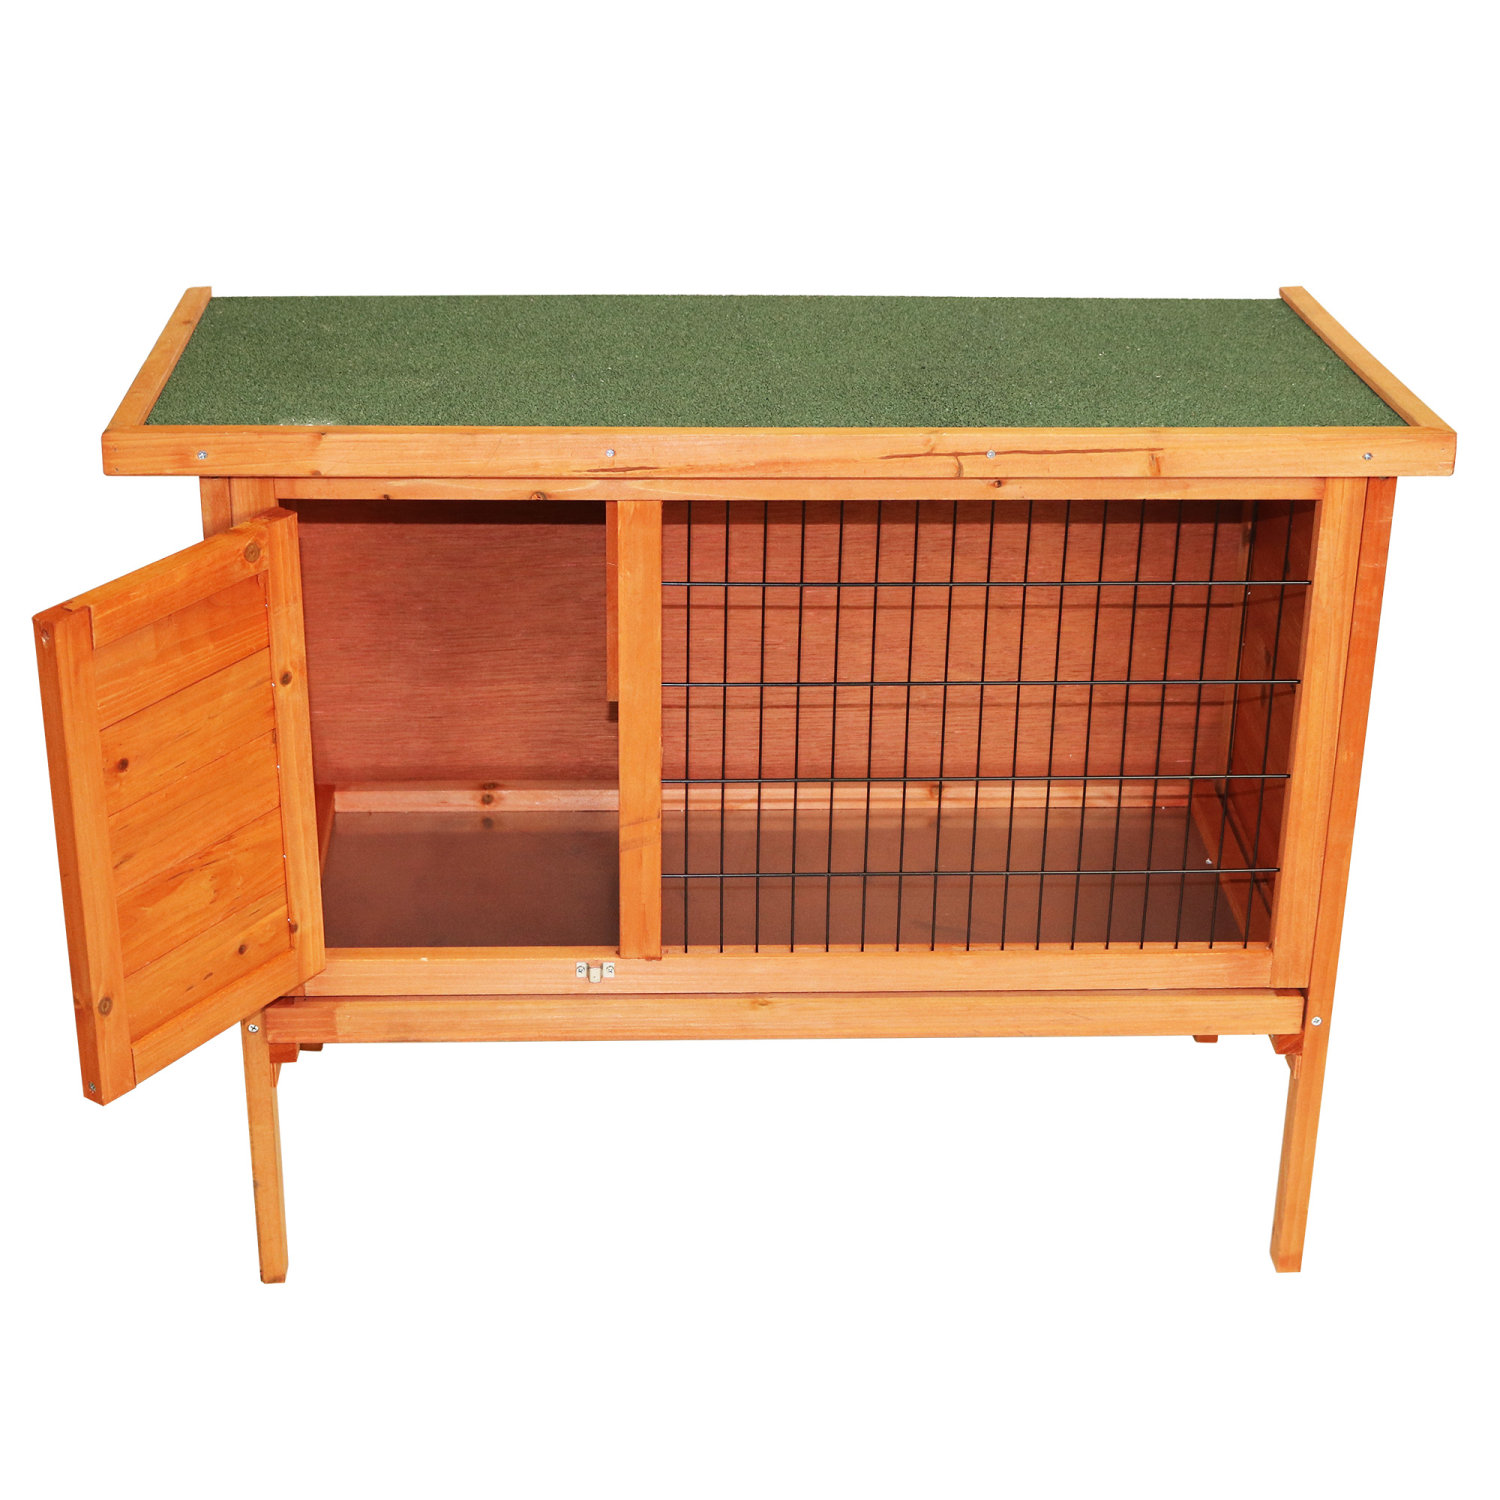 Single rabbit hutch 820x390x700mm oypla for What is a rabbit hutch